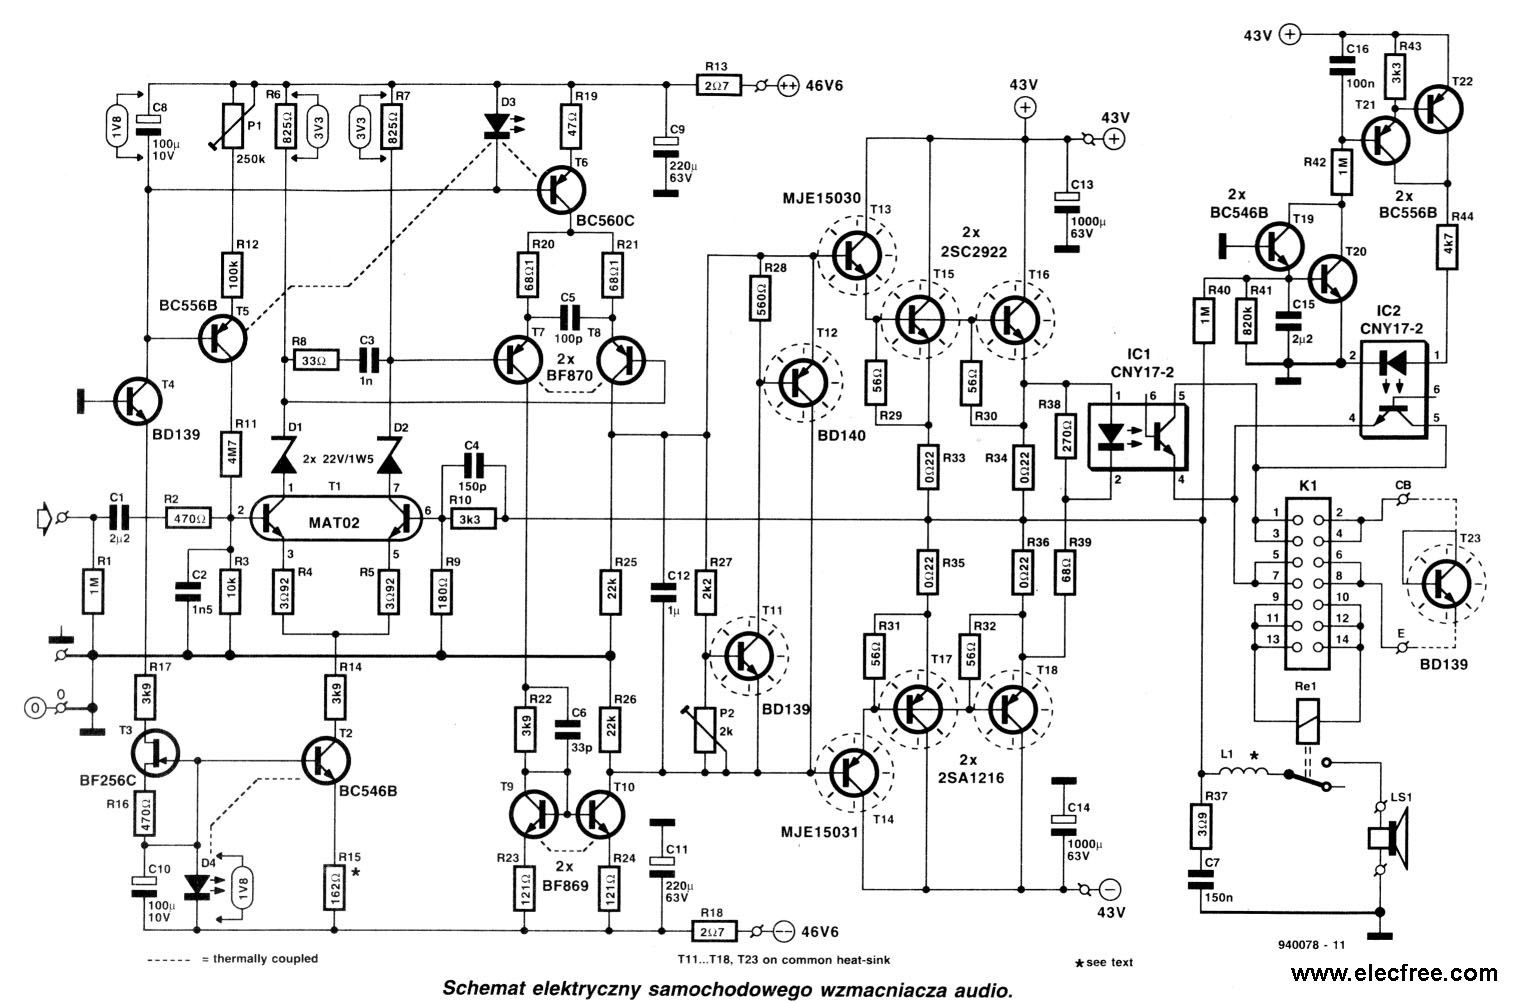 Pin By Sanane On Soft Start T Diy Amplifier Circuit Diagram Build A Voltage Controlled Oscillator Nonstopfree 2 Circuits Of High Power Transistor 200 Watts And 300 Rms Electric